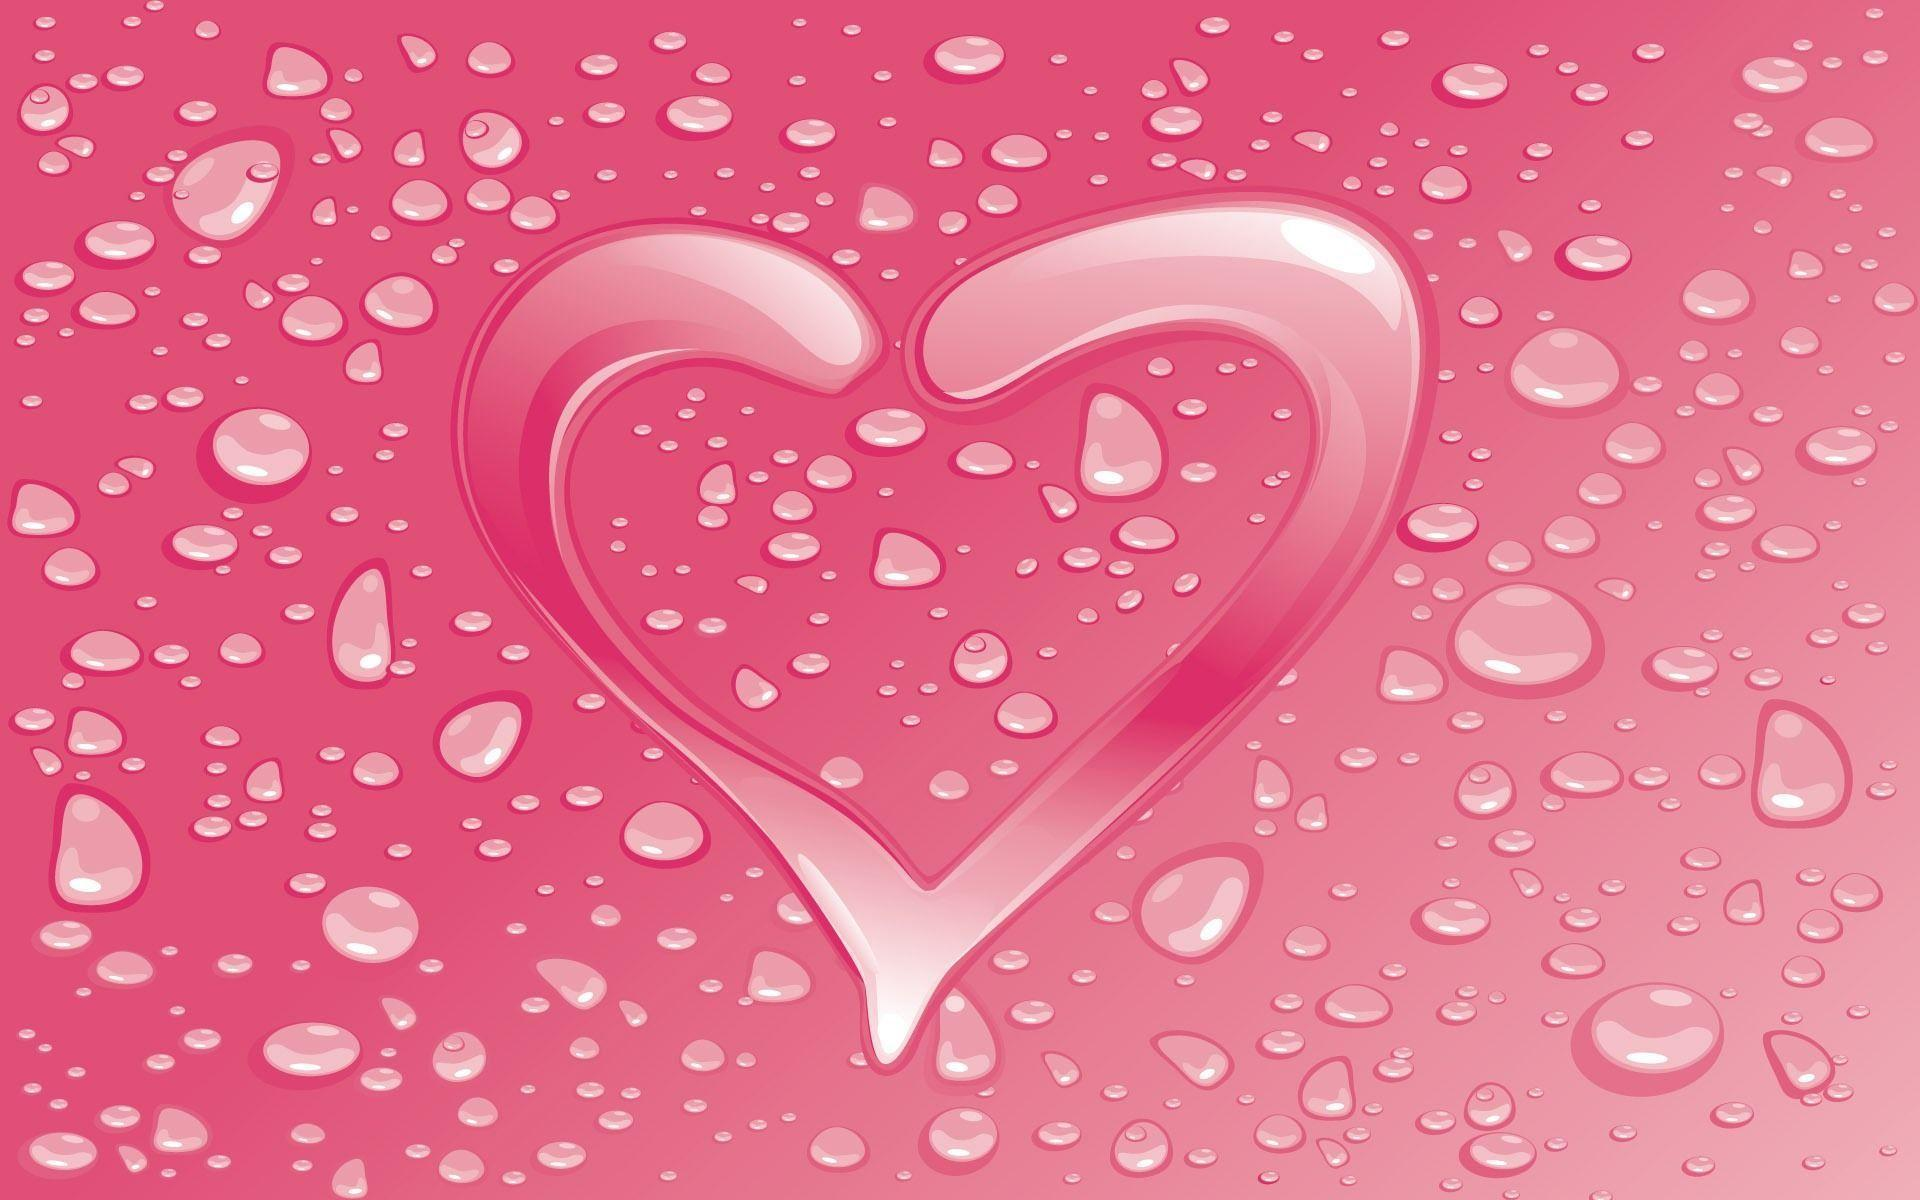 Valentines Wallpapers For Desktop - Wallpaper Cave